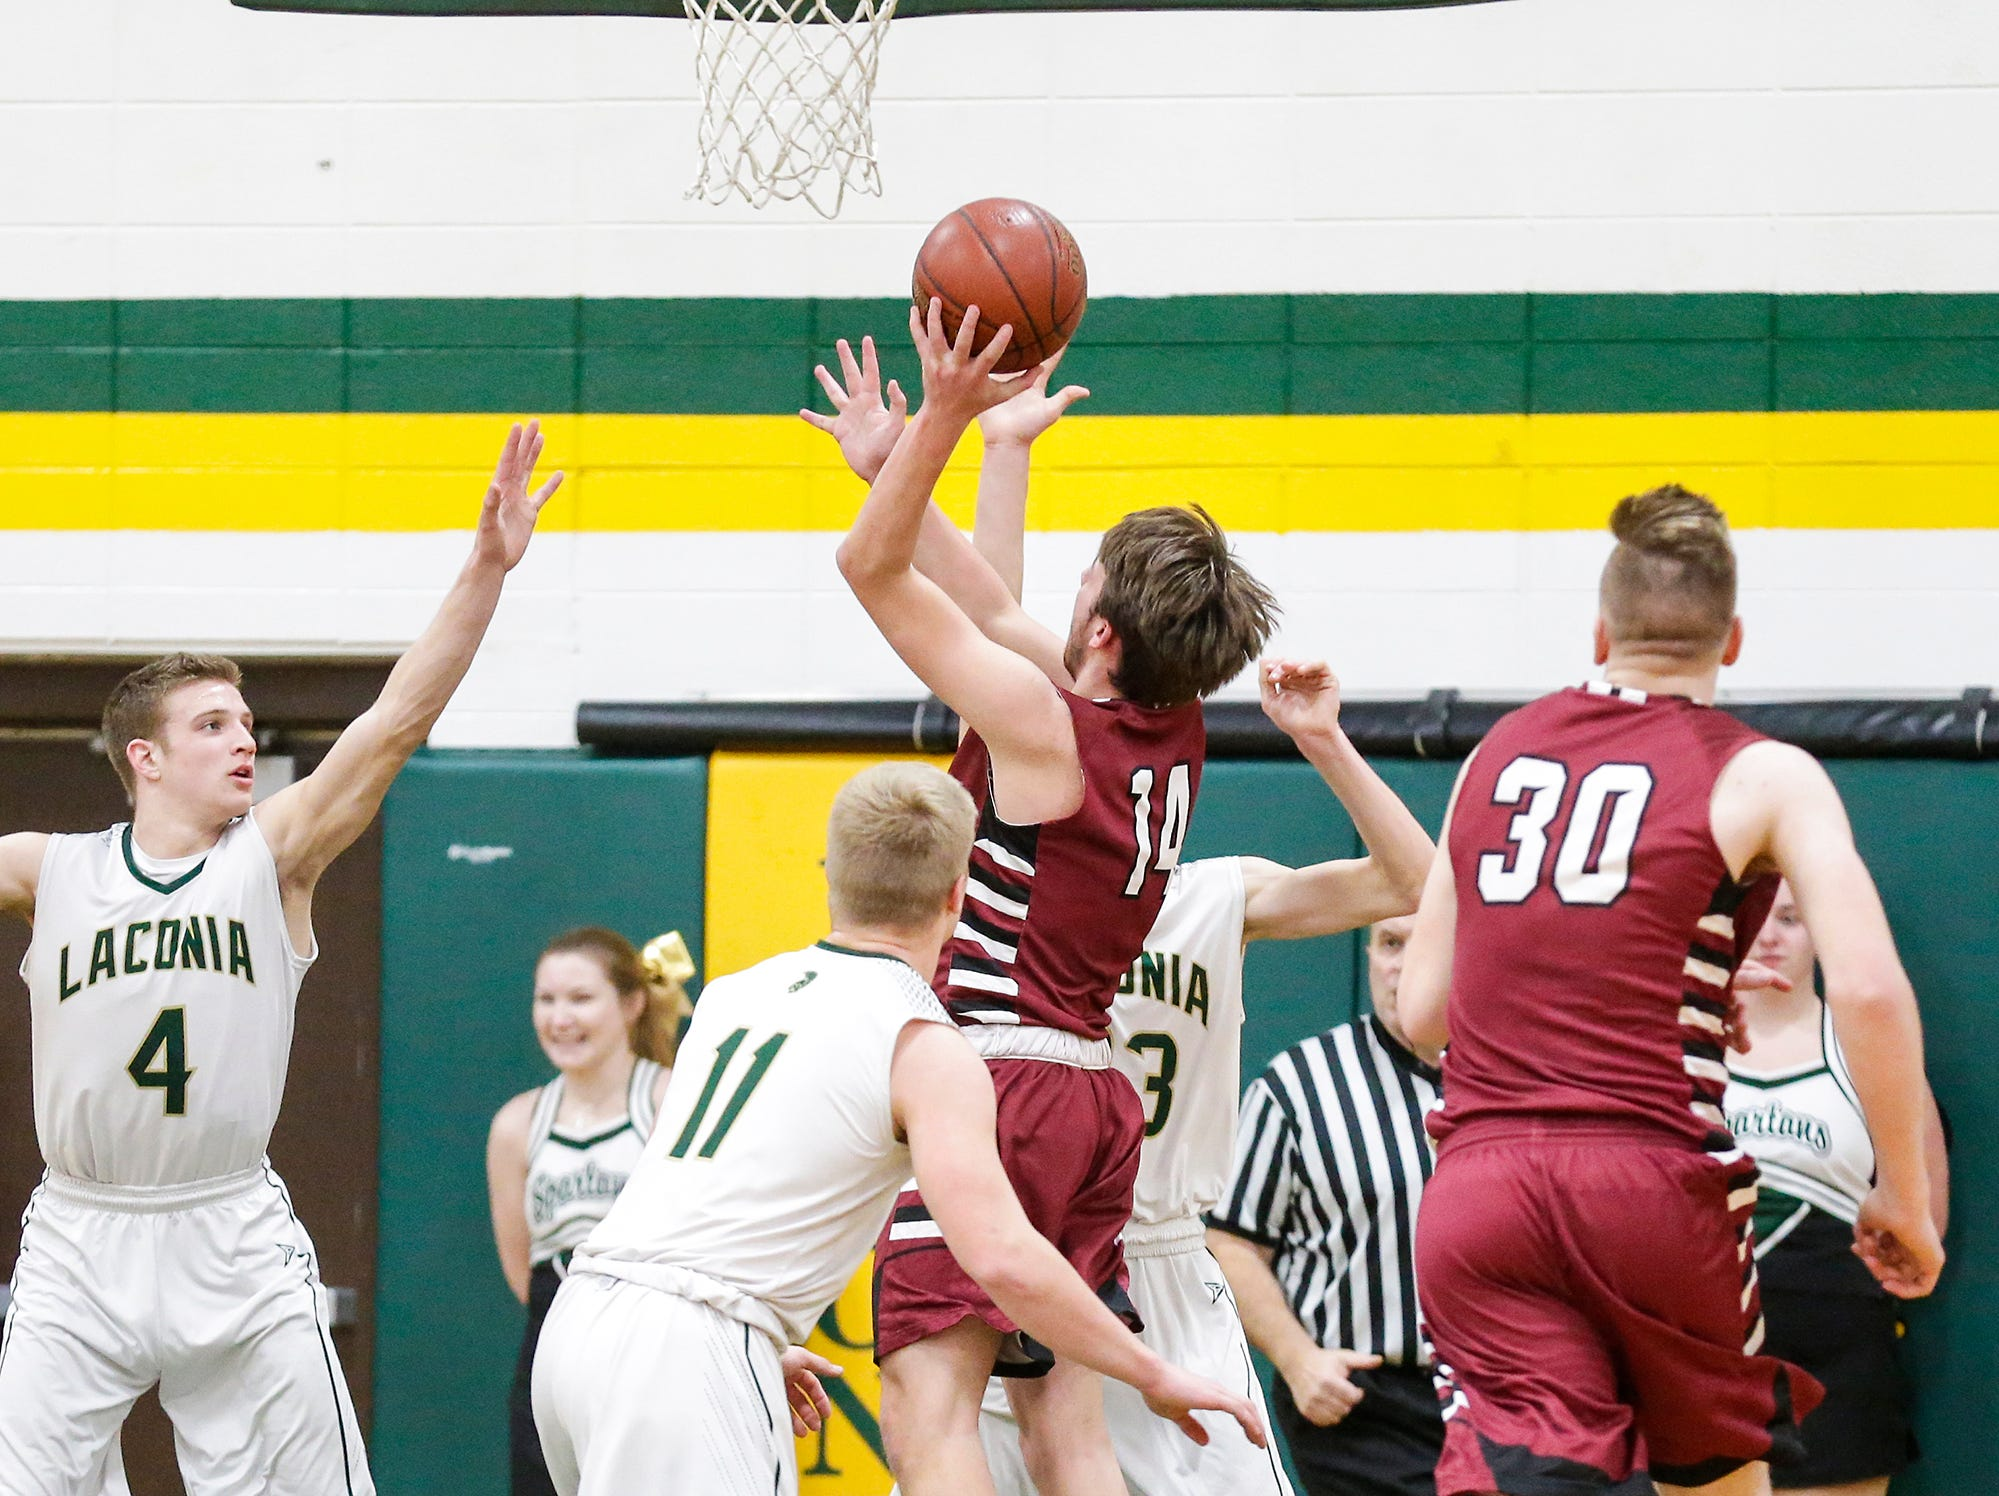 Mayville High School boys basketball's Tyler Gutjahr goes up for a basket against Laconia High School during their game Friday, January 25, 2019 in Rosendale. Laconia won the game 80-54. Doug Raflik/USA TODAY NETWORK-Wisconsin